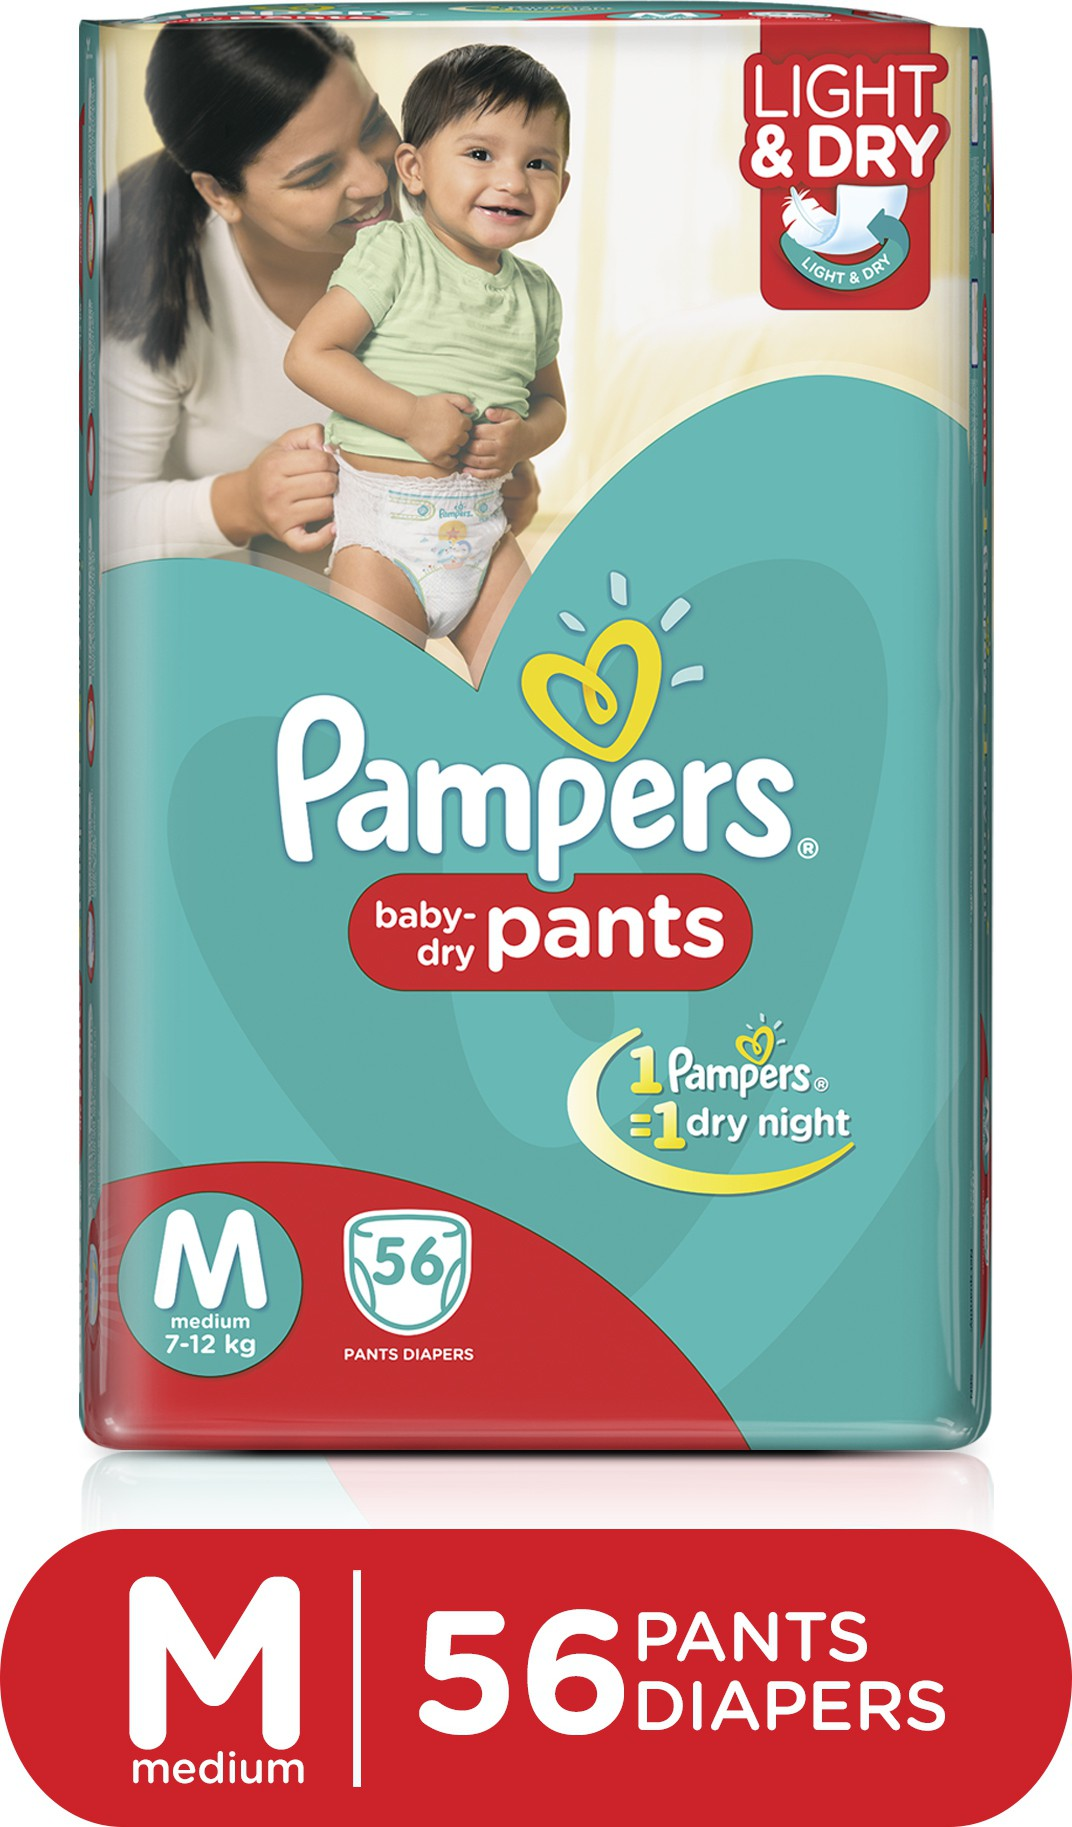 Deals - Delhi - Diapers <br> Pampers, Mamy Poko, Huggies...<br> Category - baby_care<br> Business - Flipkart.com